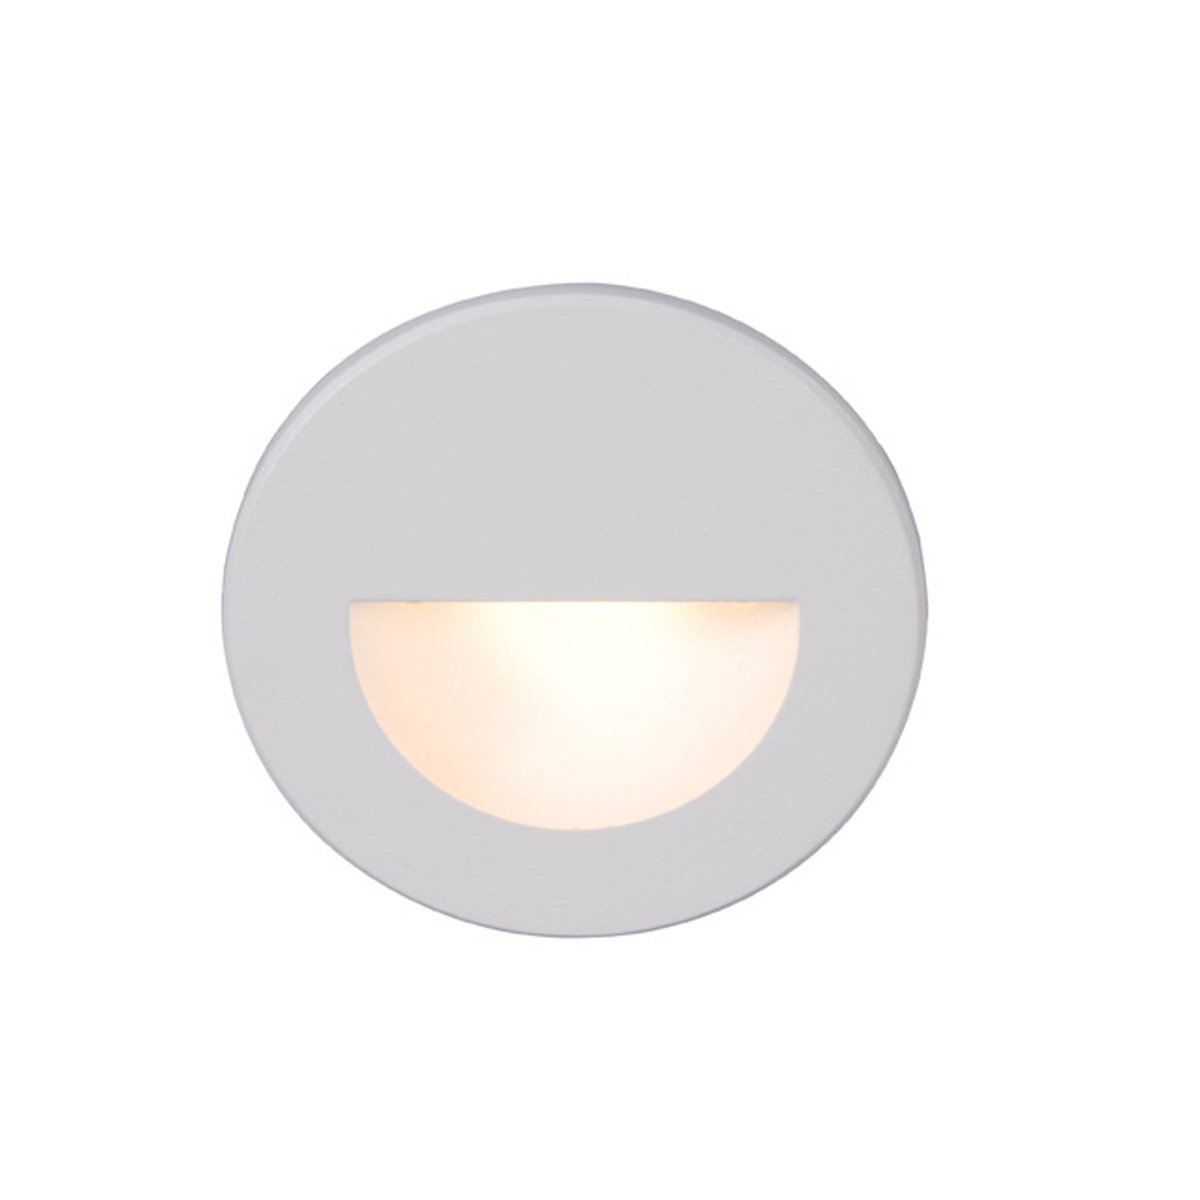 Wac Lighting Wl Led300 C Bn Led Step Light Circular Scoop Indoor Lutron Dimmer Switch Wiring Diagram Multiple Fixture Lights